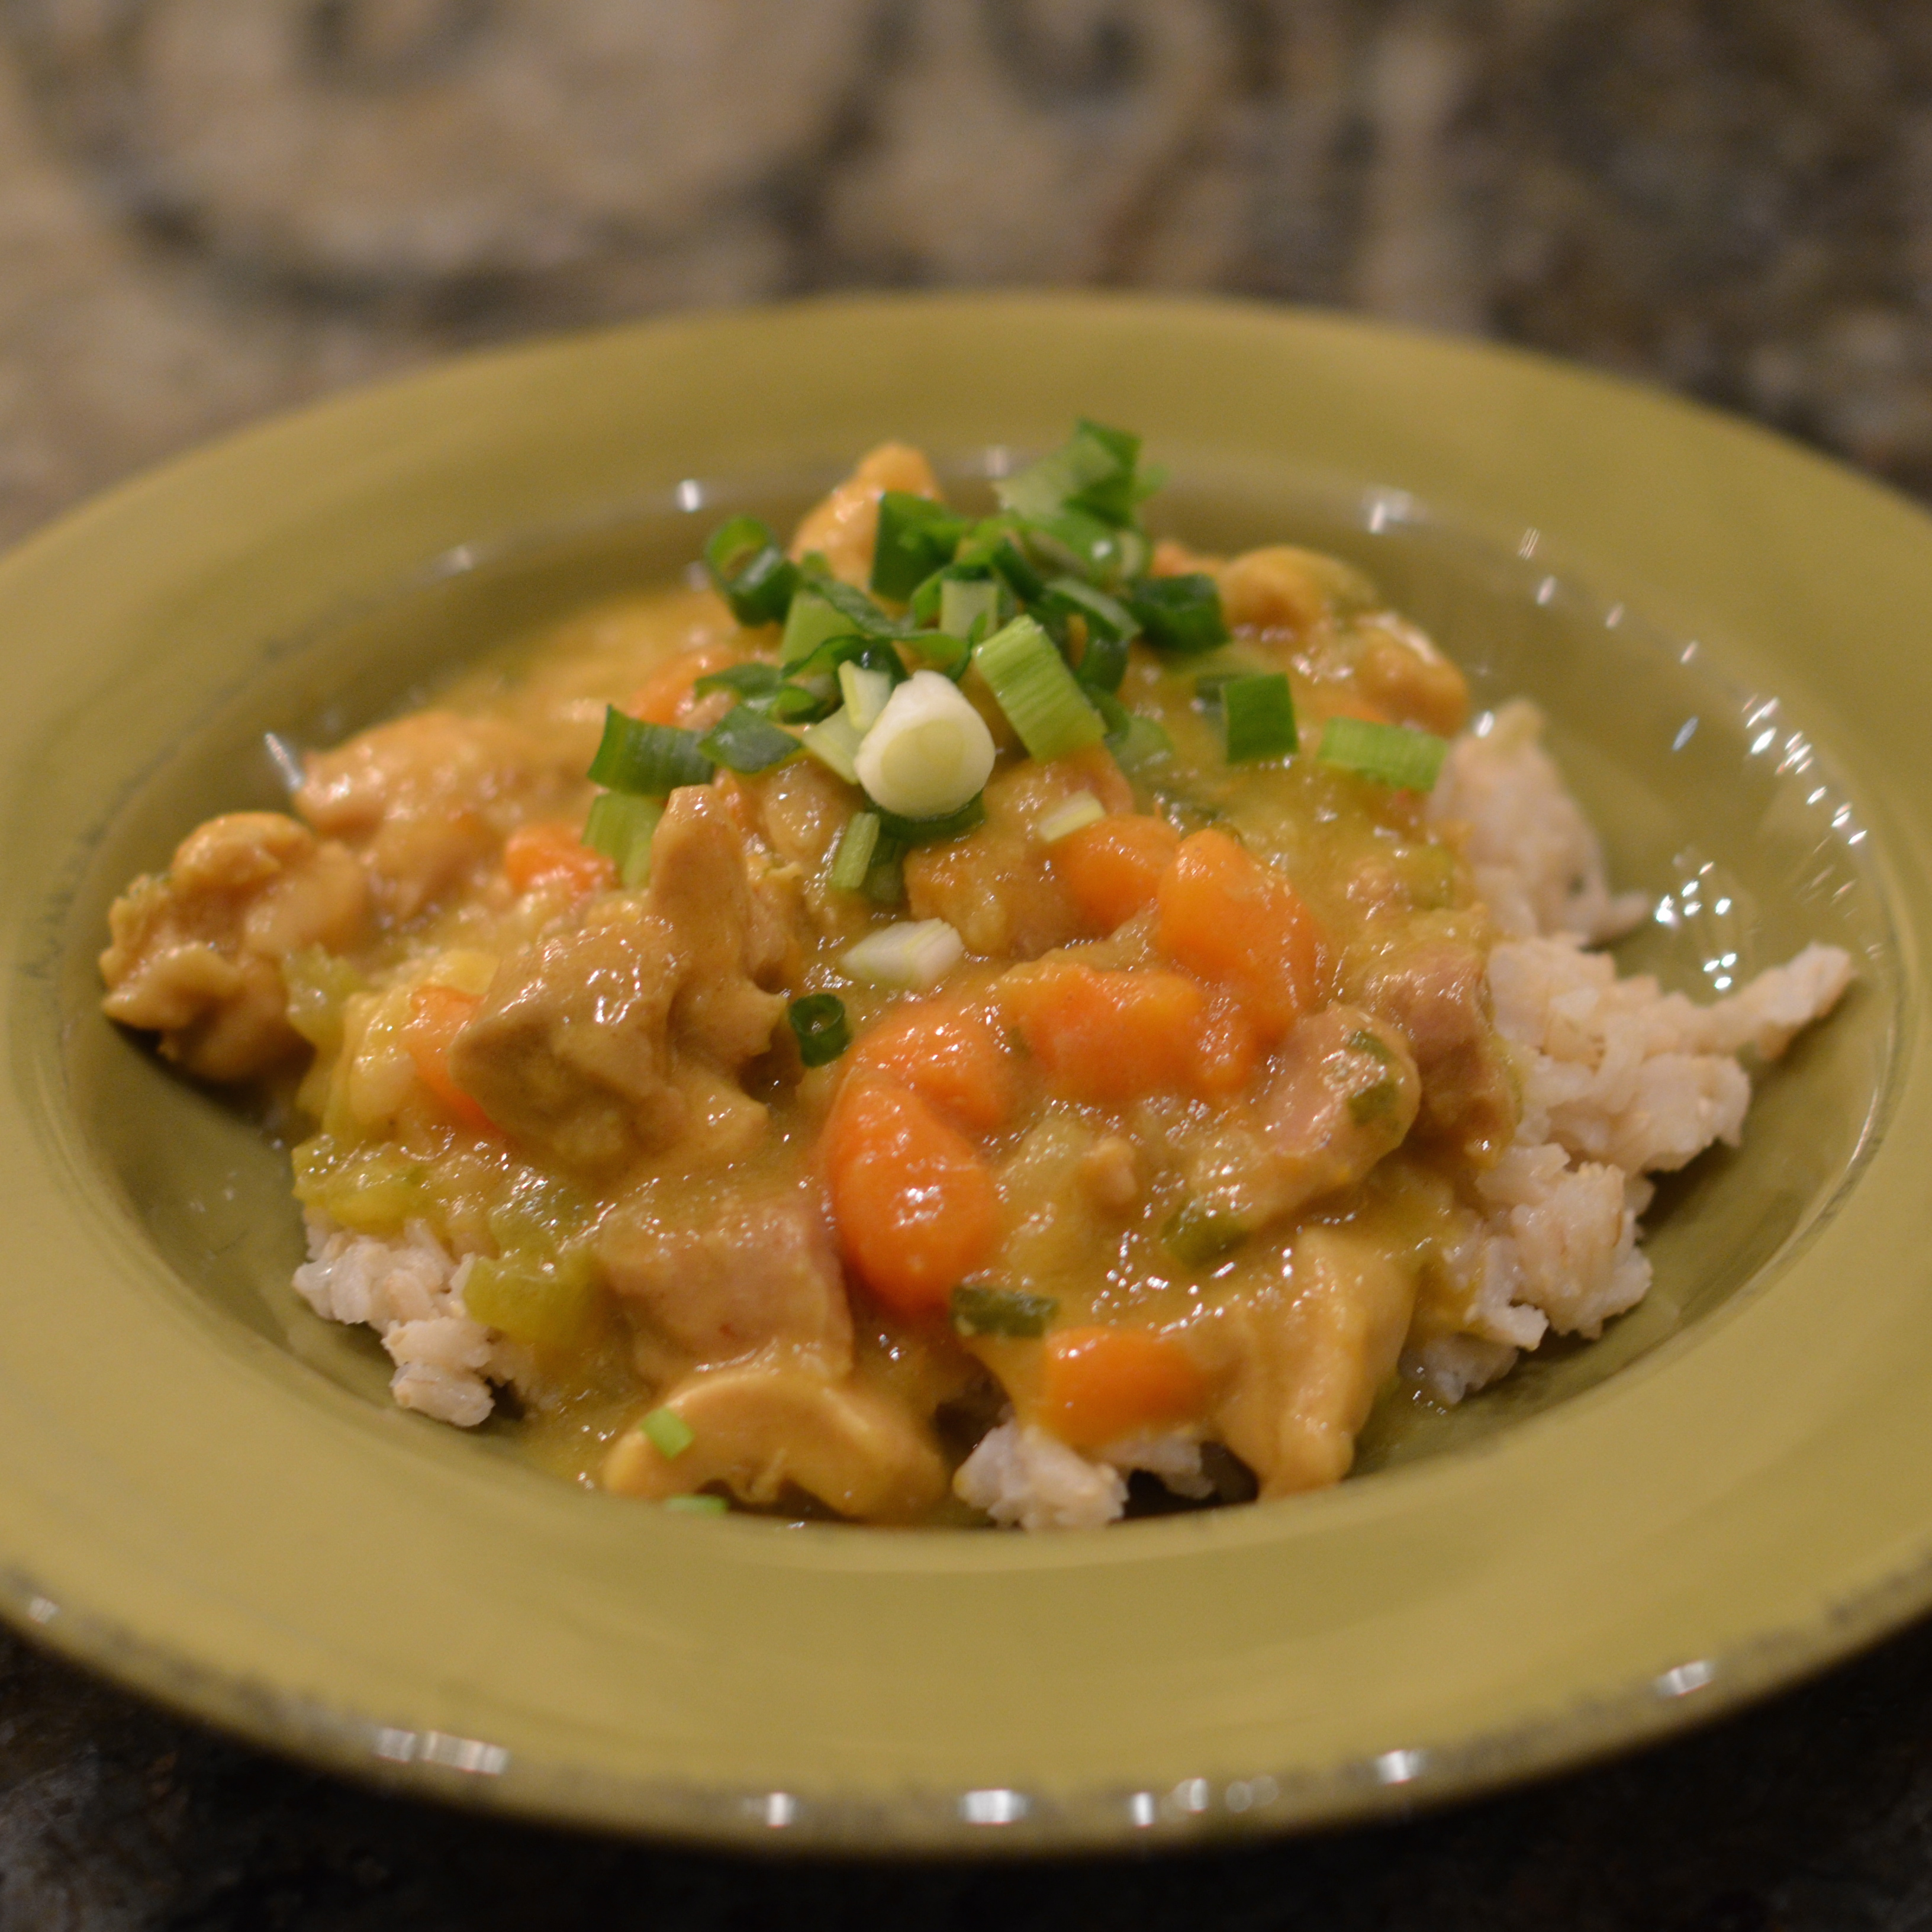 CHICKEN COCONUT CURRY - After Orange County